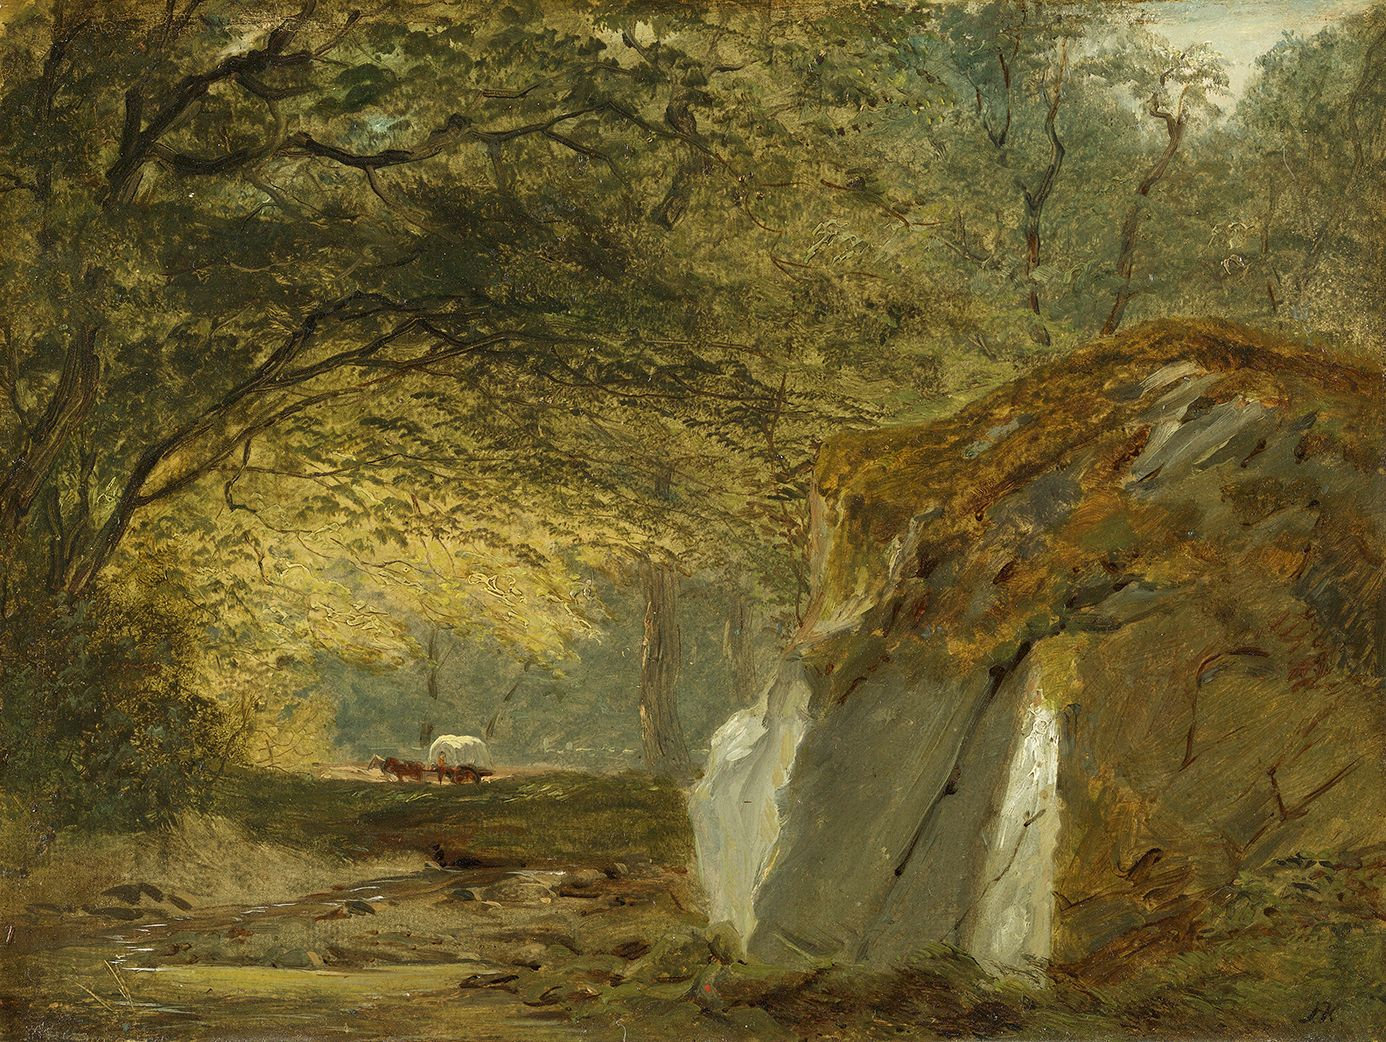 John Frederick Kensett (1818-1872), In the Wilderness, circa 1851-1852